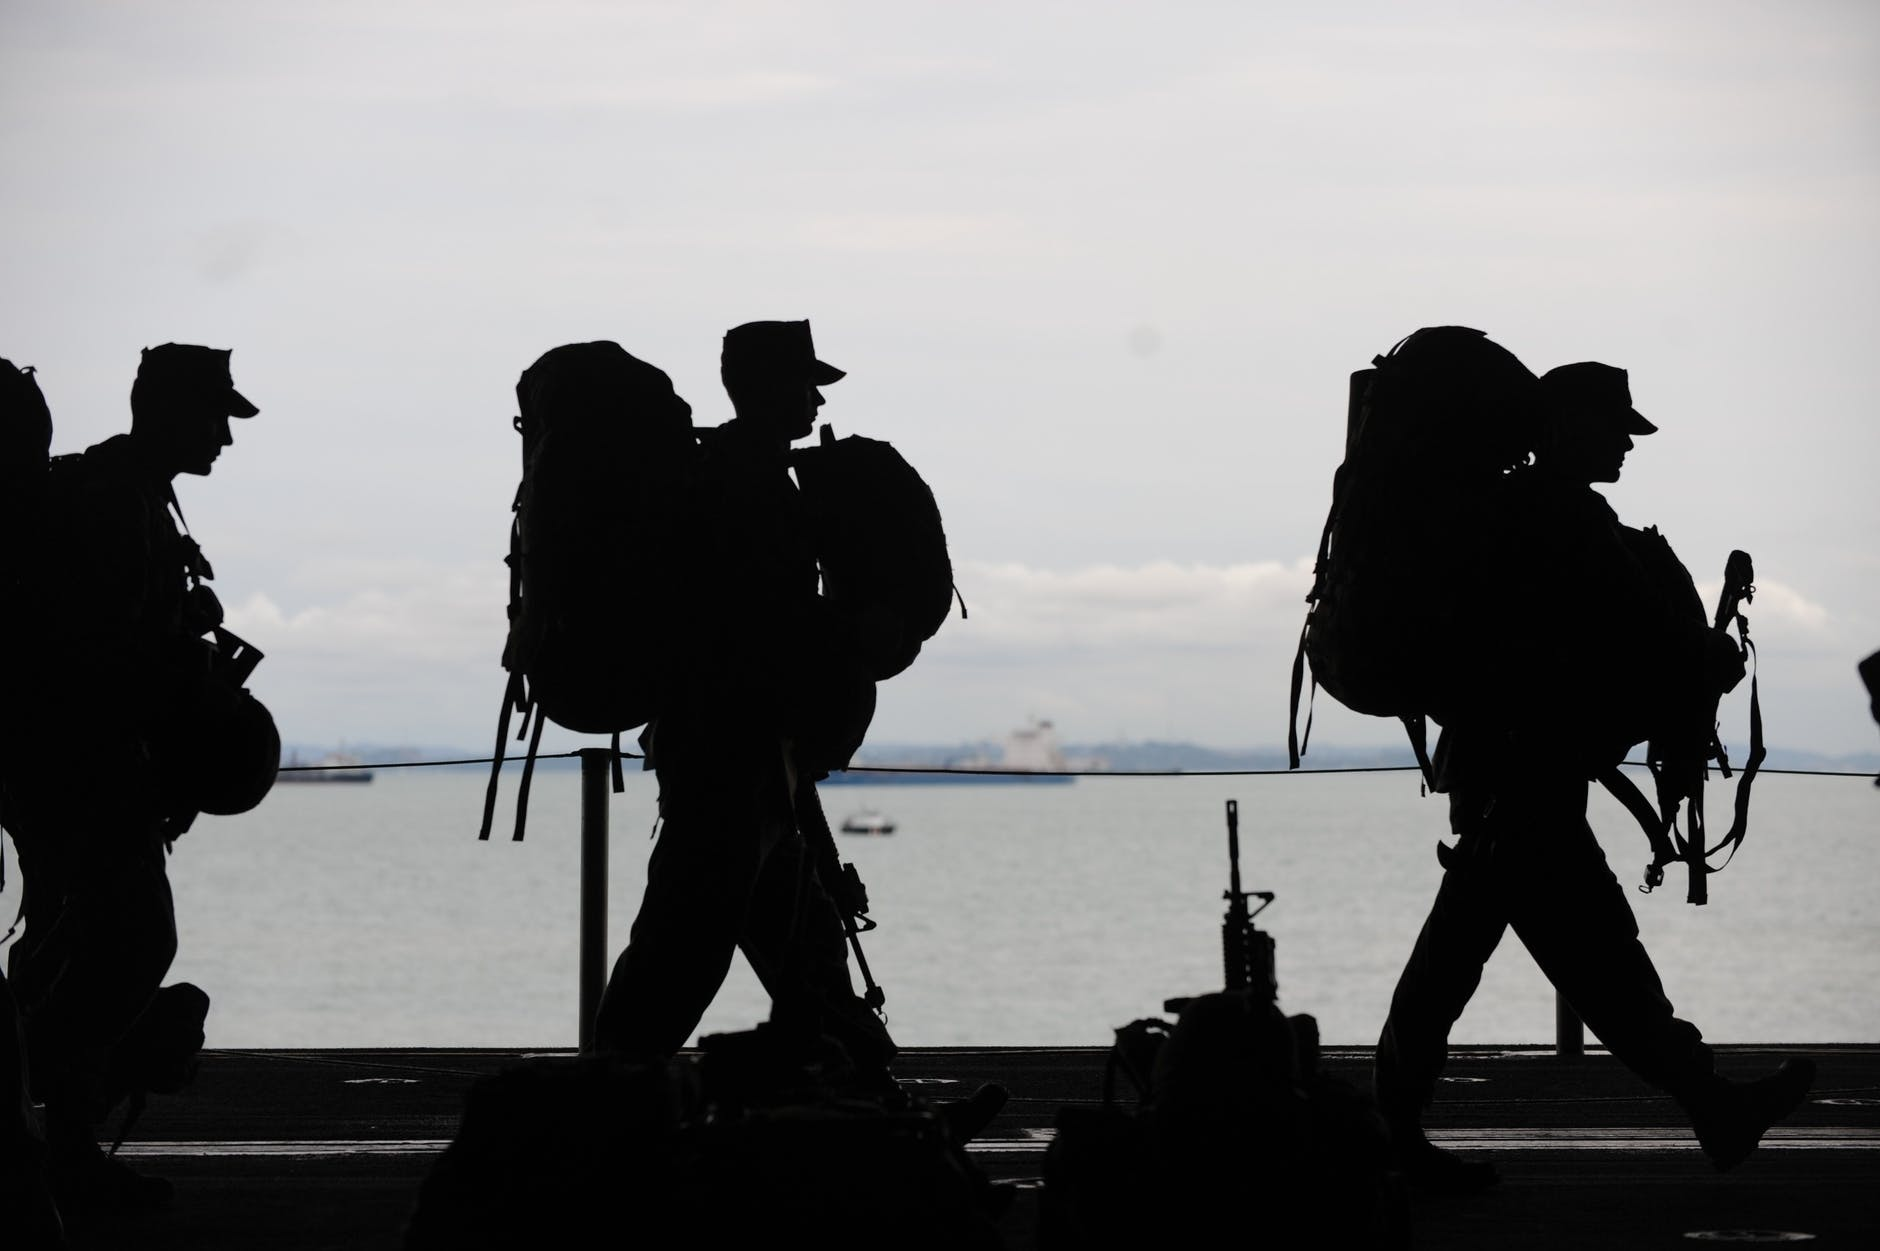 silhouette of soldiers walking (before a post military life)